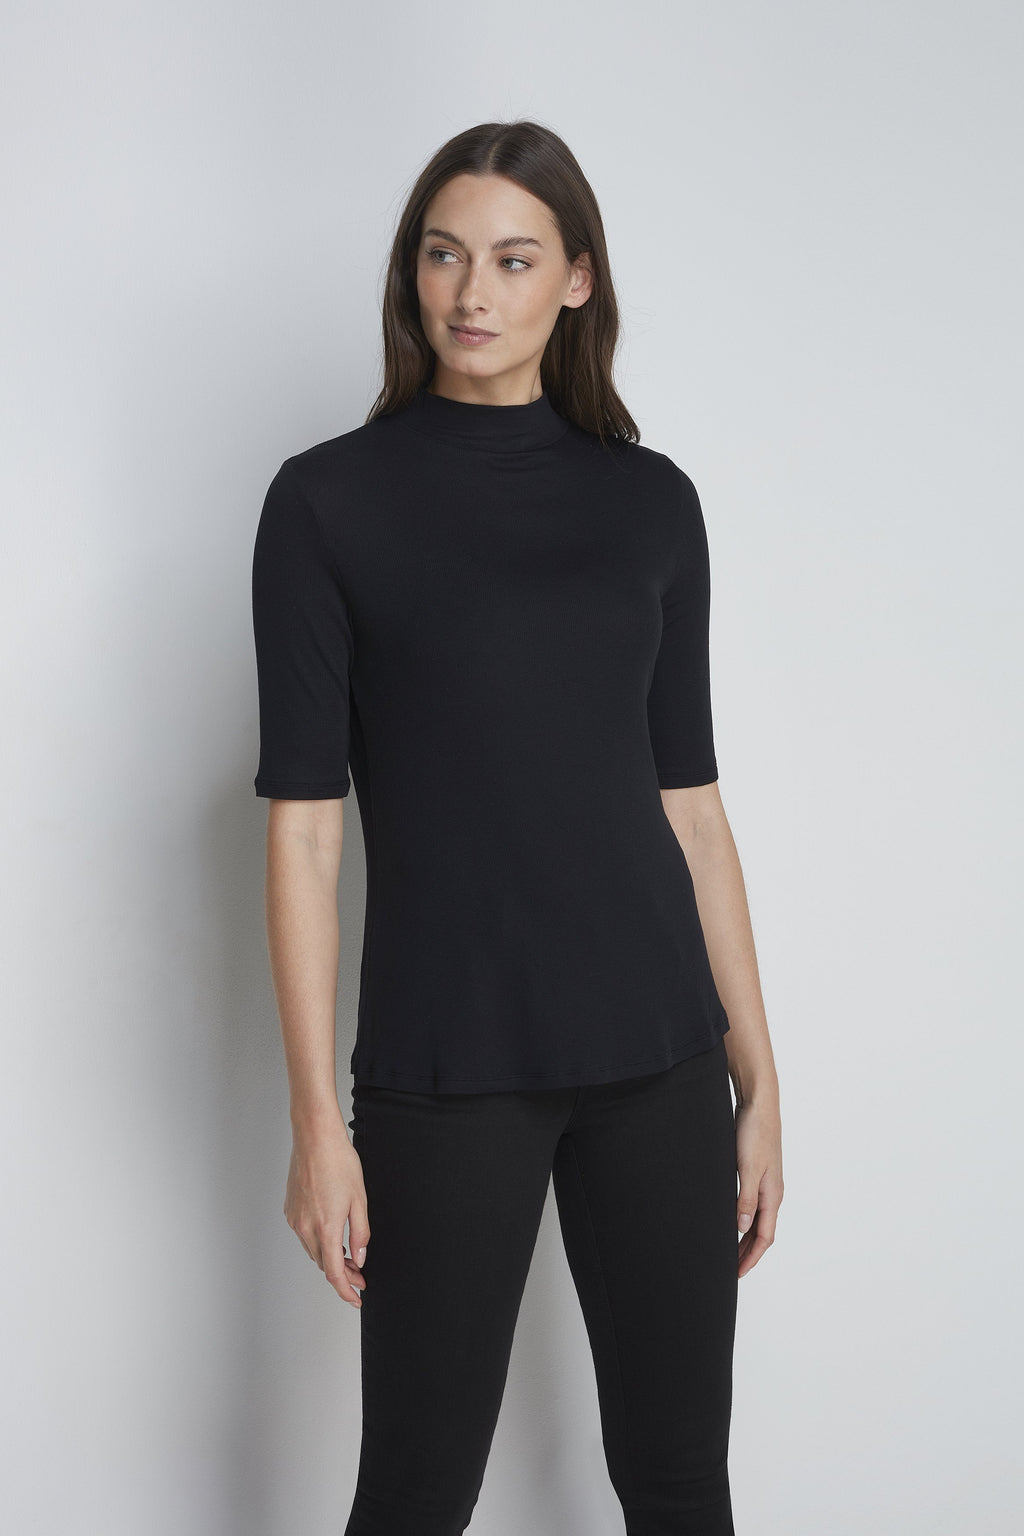 Half Sleeve Mock Neck Micro Modal T-shirt by Lavender Hill Clothing